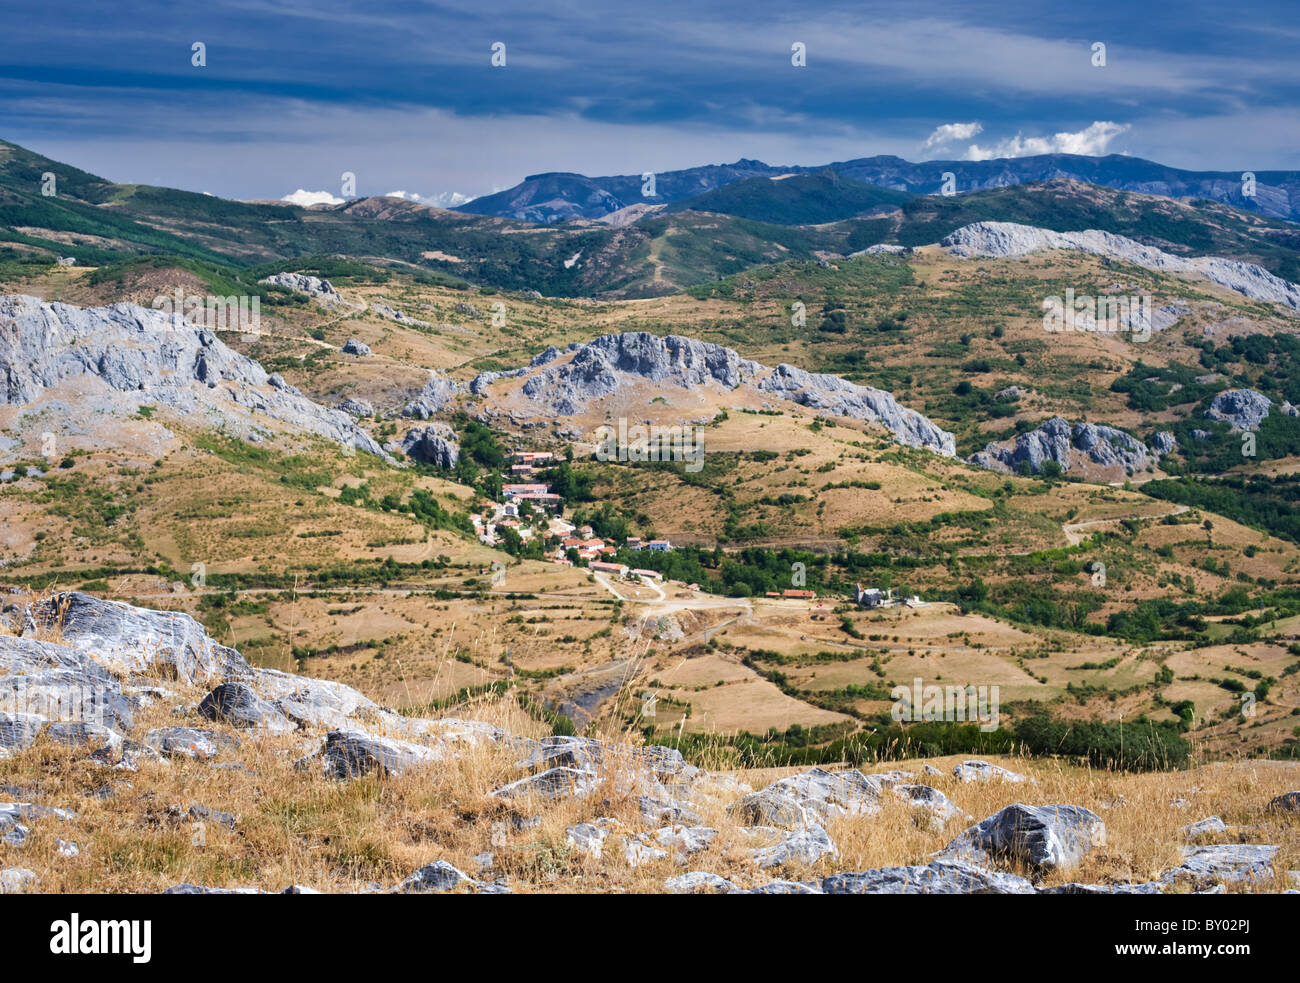 The village of Santibañez de Resoba, in the Palentine Mountains, part of the Cantabrian Mountain Range of northern - Stock Image